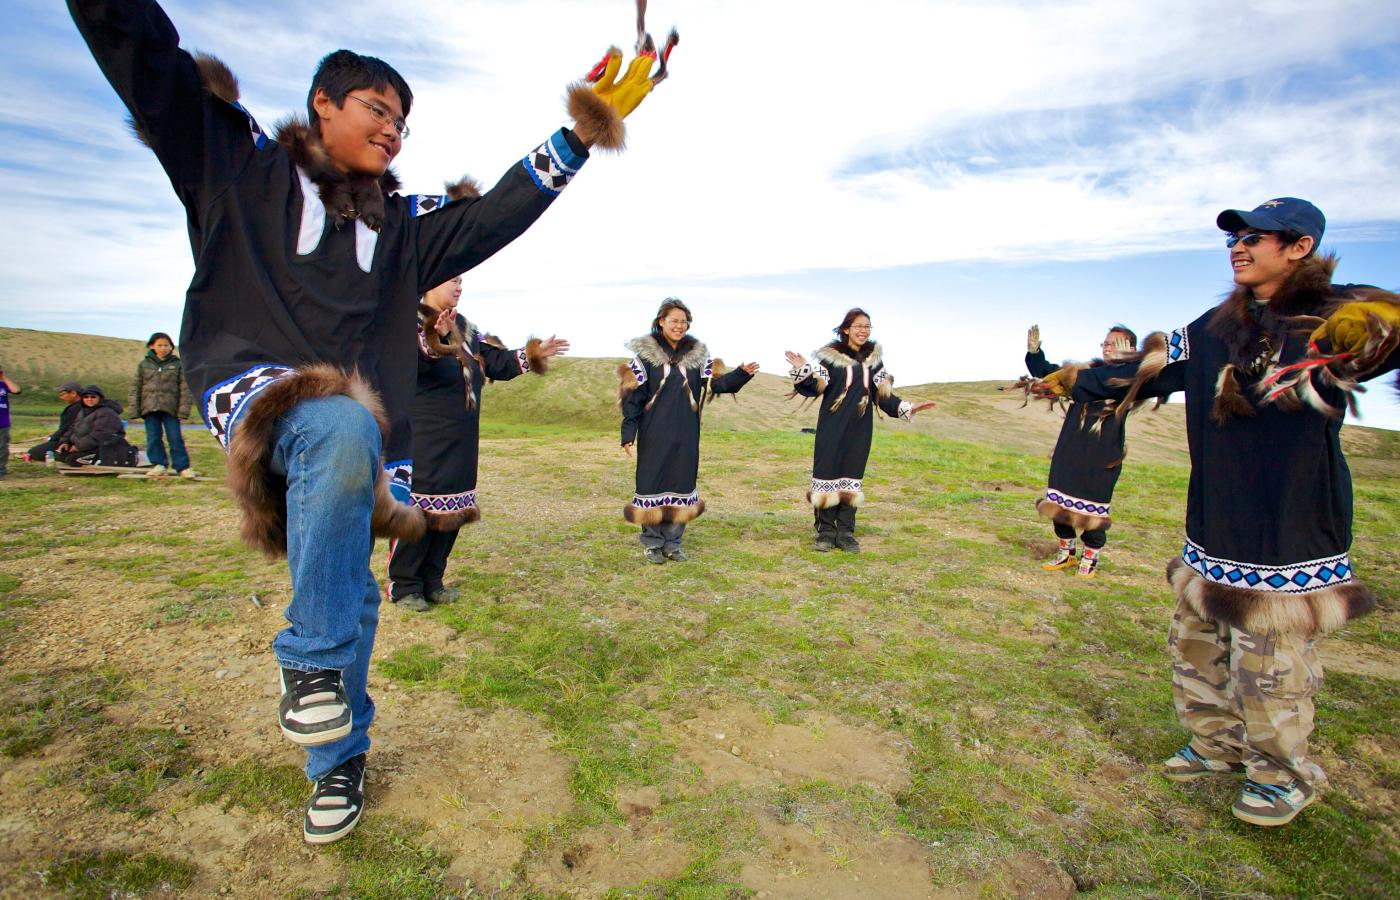 Inuit Drummers and Dancers dancing on the tundra in the Northwest Territories